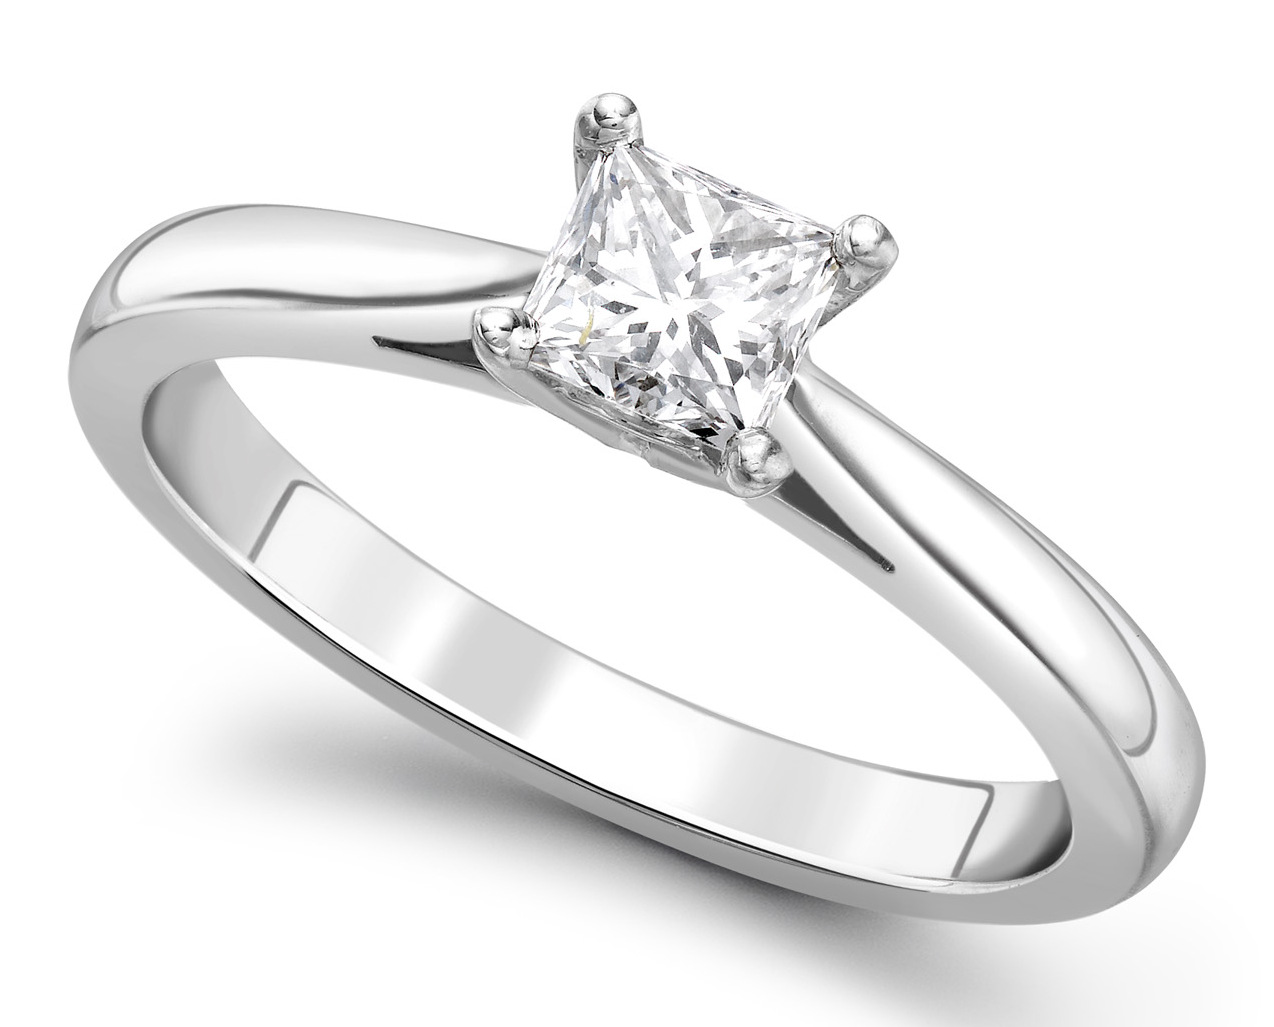 Princess Cut Four Claw Platinum Engagement Ring GRC651PLT Main Image